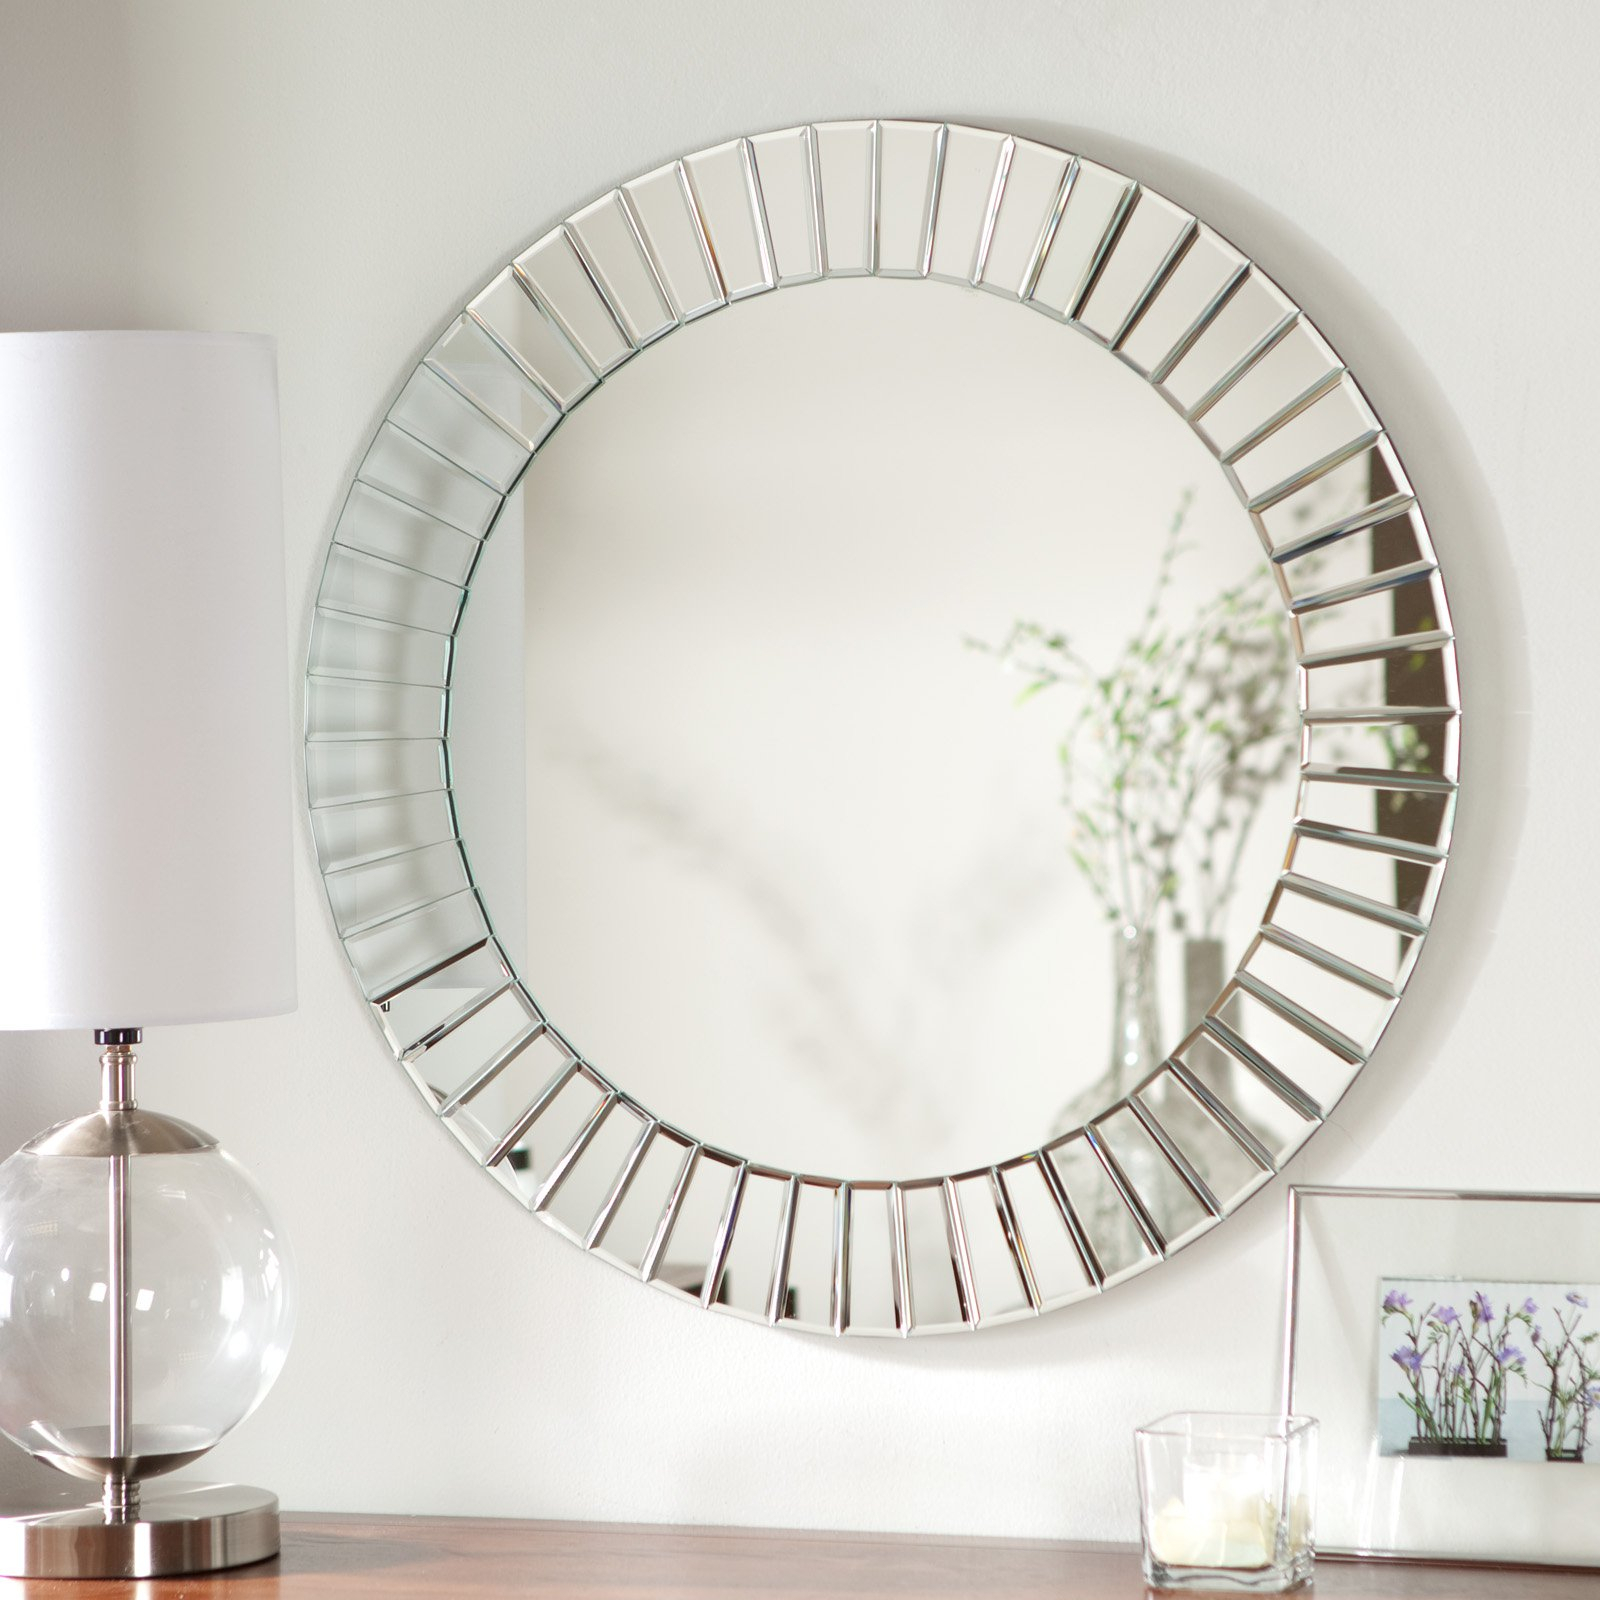 Delightful Small Oval Beveled Mirror Metal Design Lighting Within Thornbury Oval Bevel Frameless Wall Mirrors (View 4 of 20)